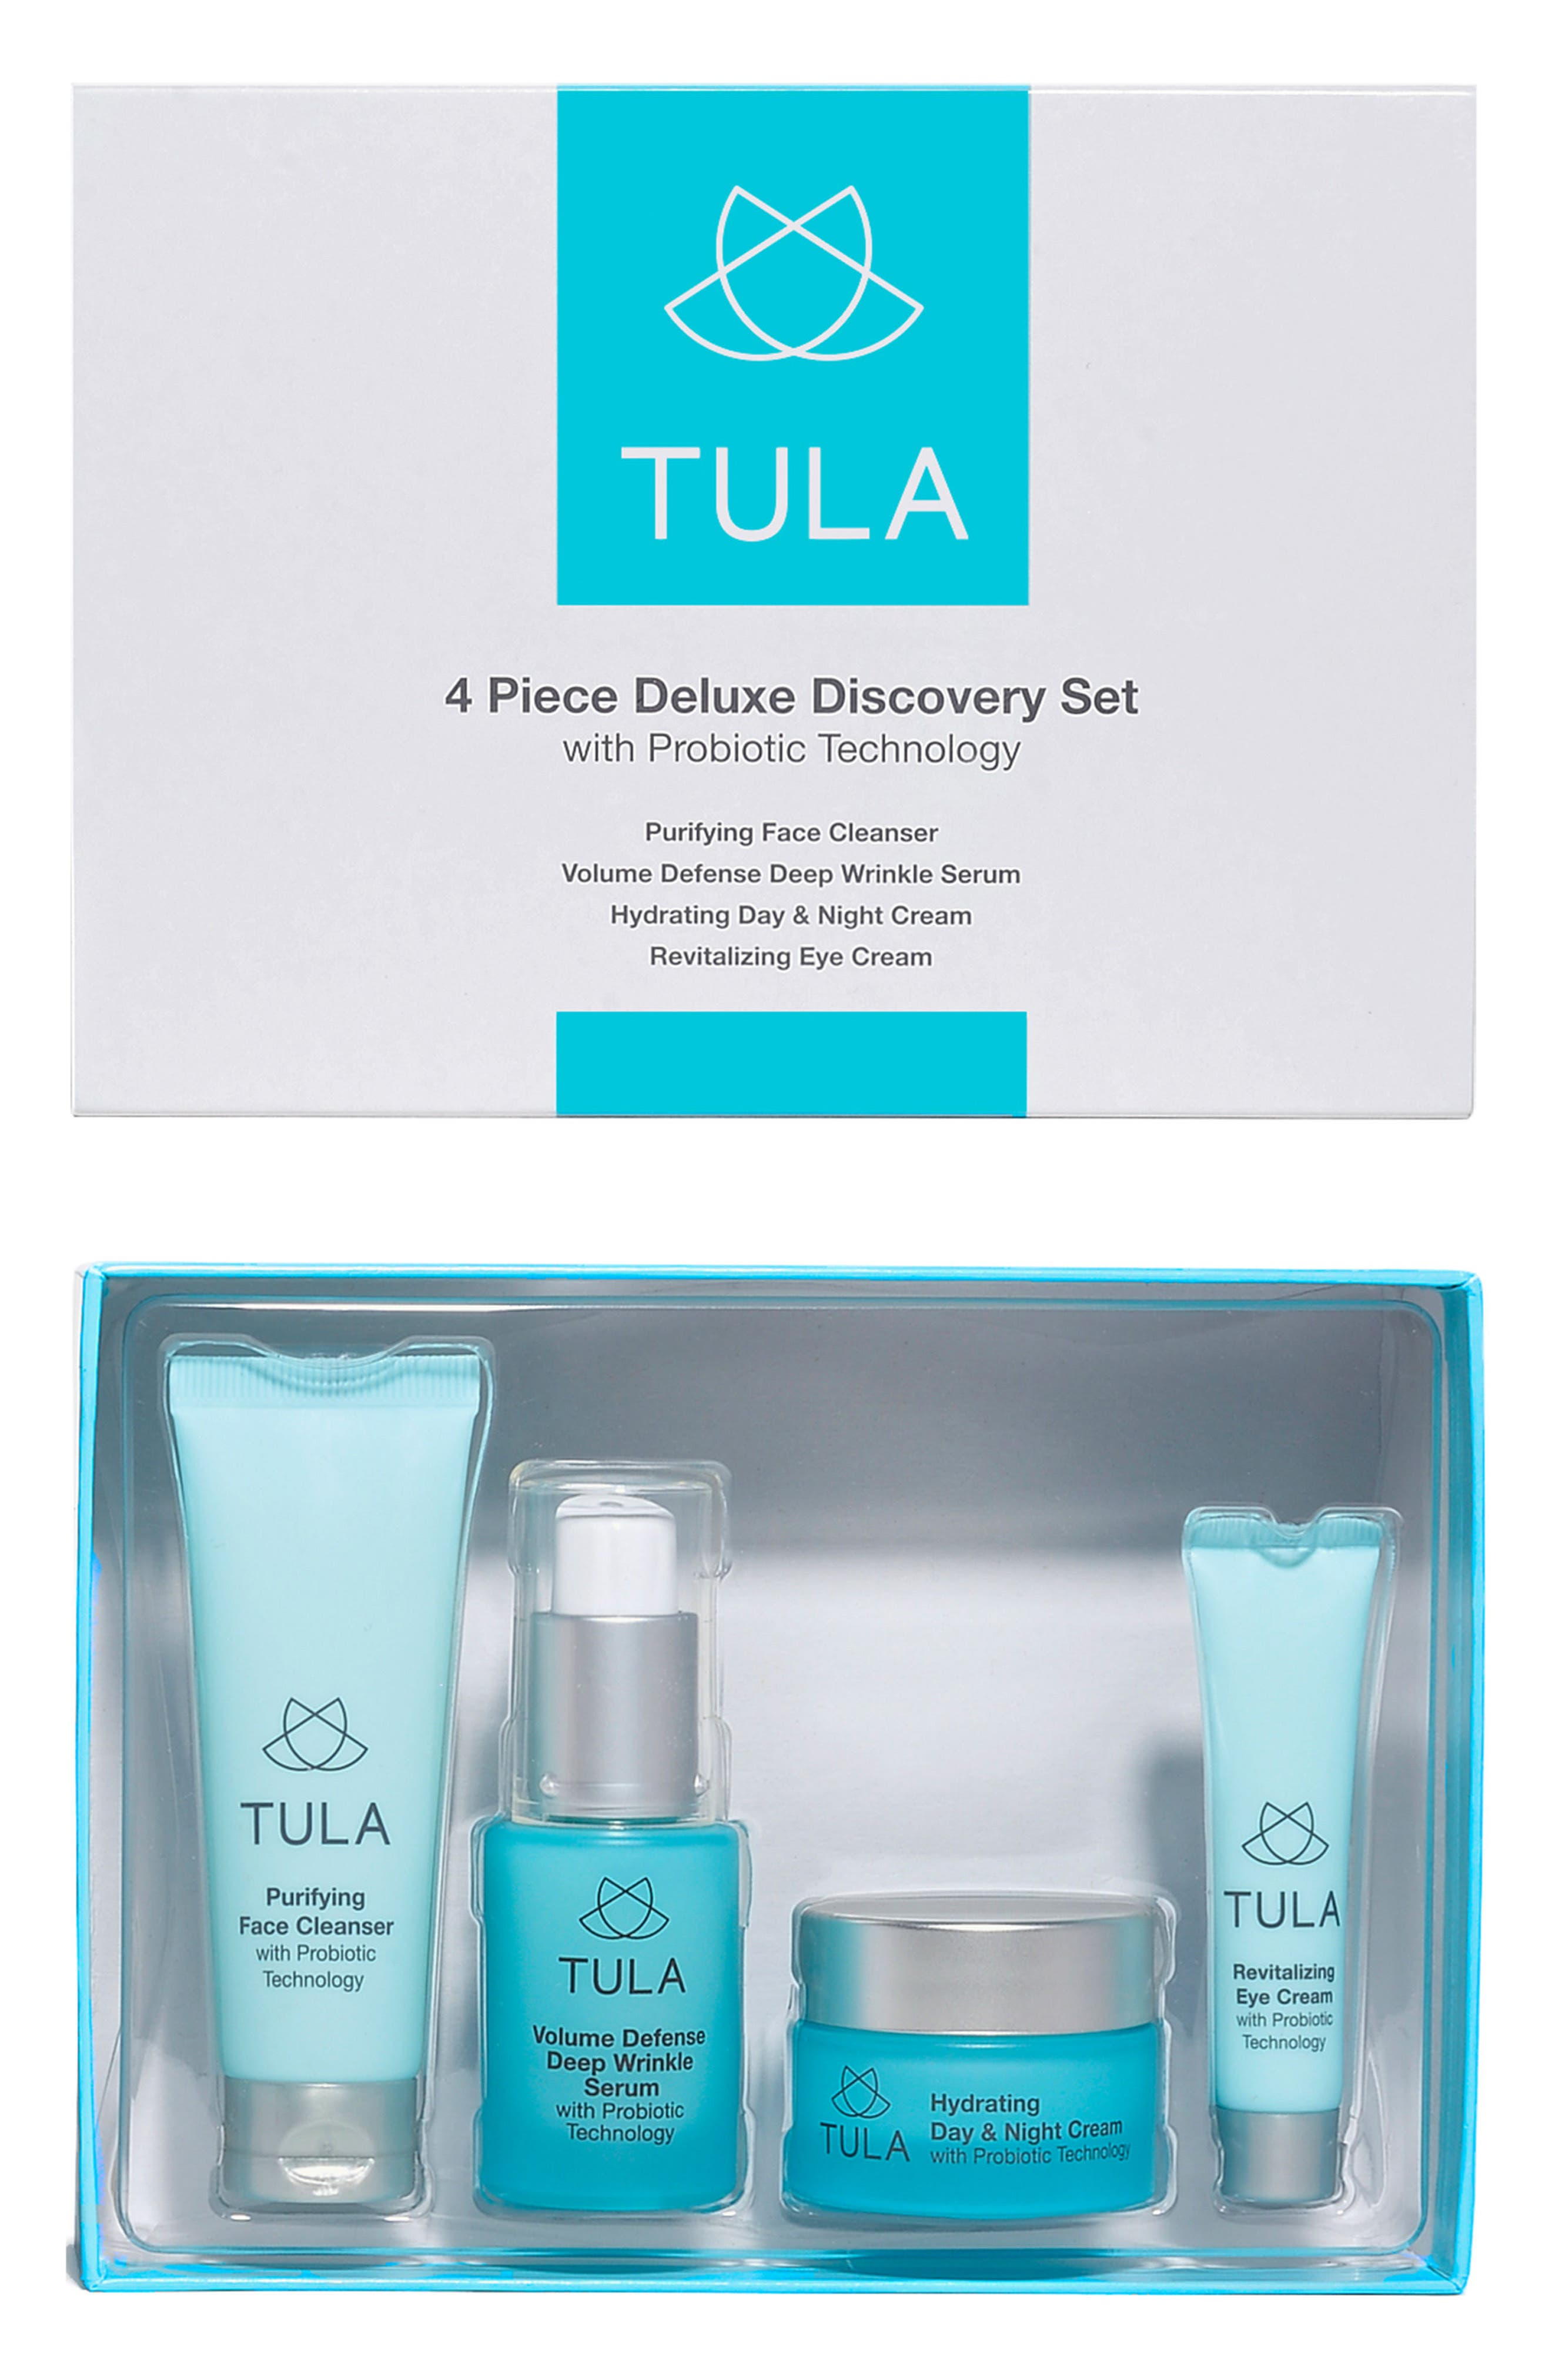 Tula Probiotic Skincare Anti-Aging Discovery Kit ($126 Value)